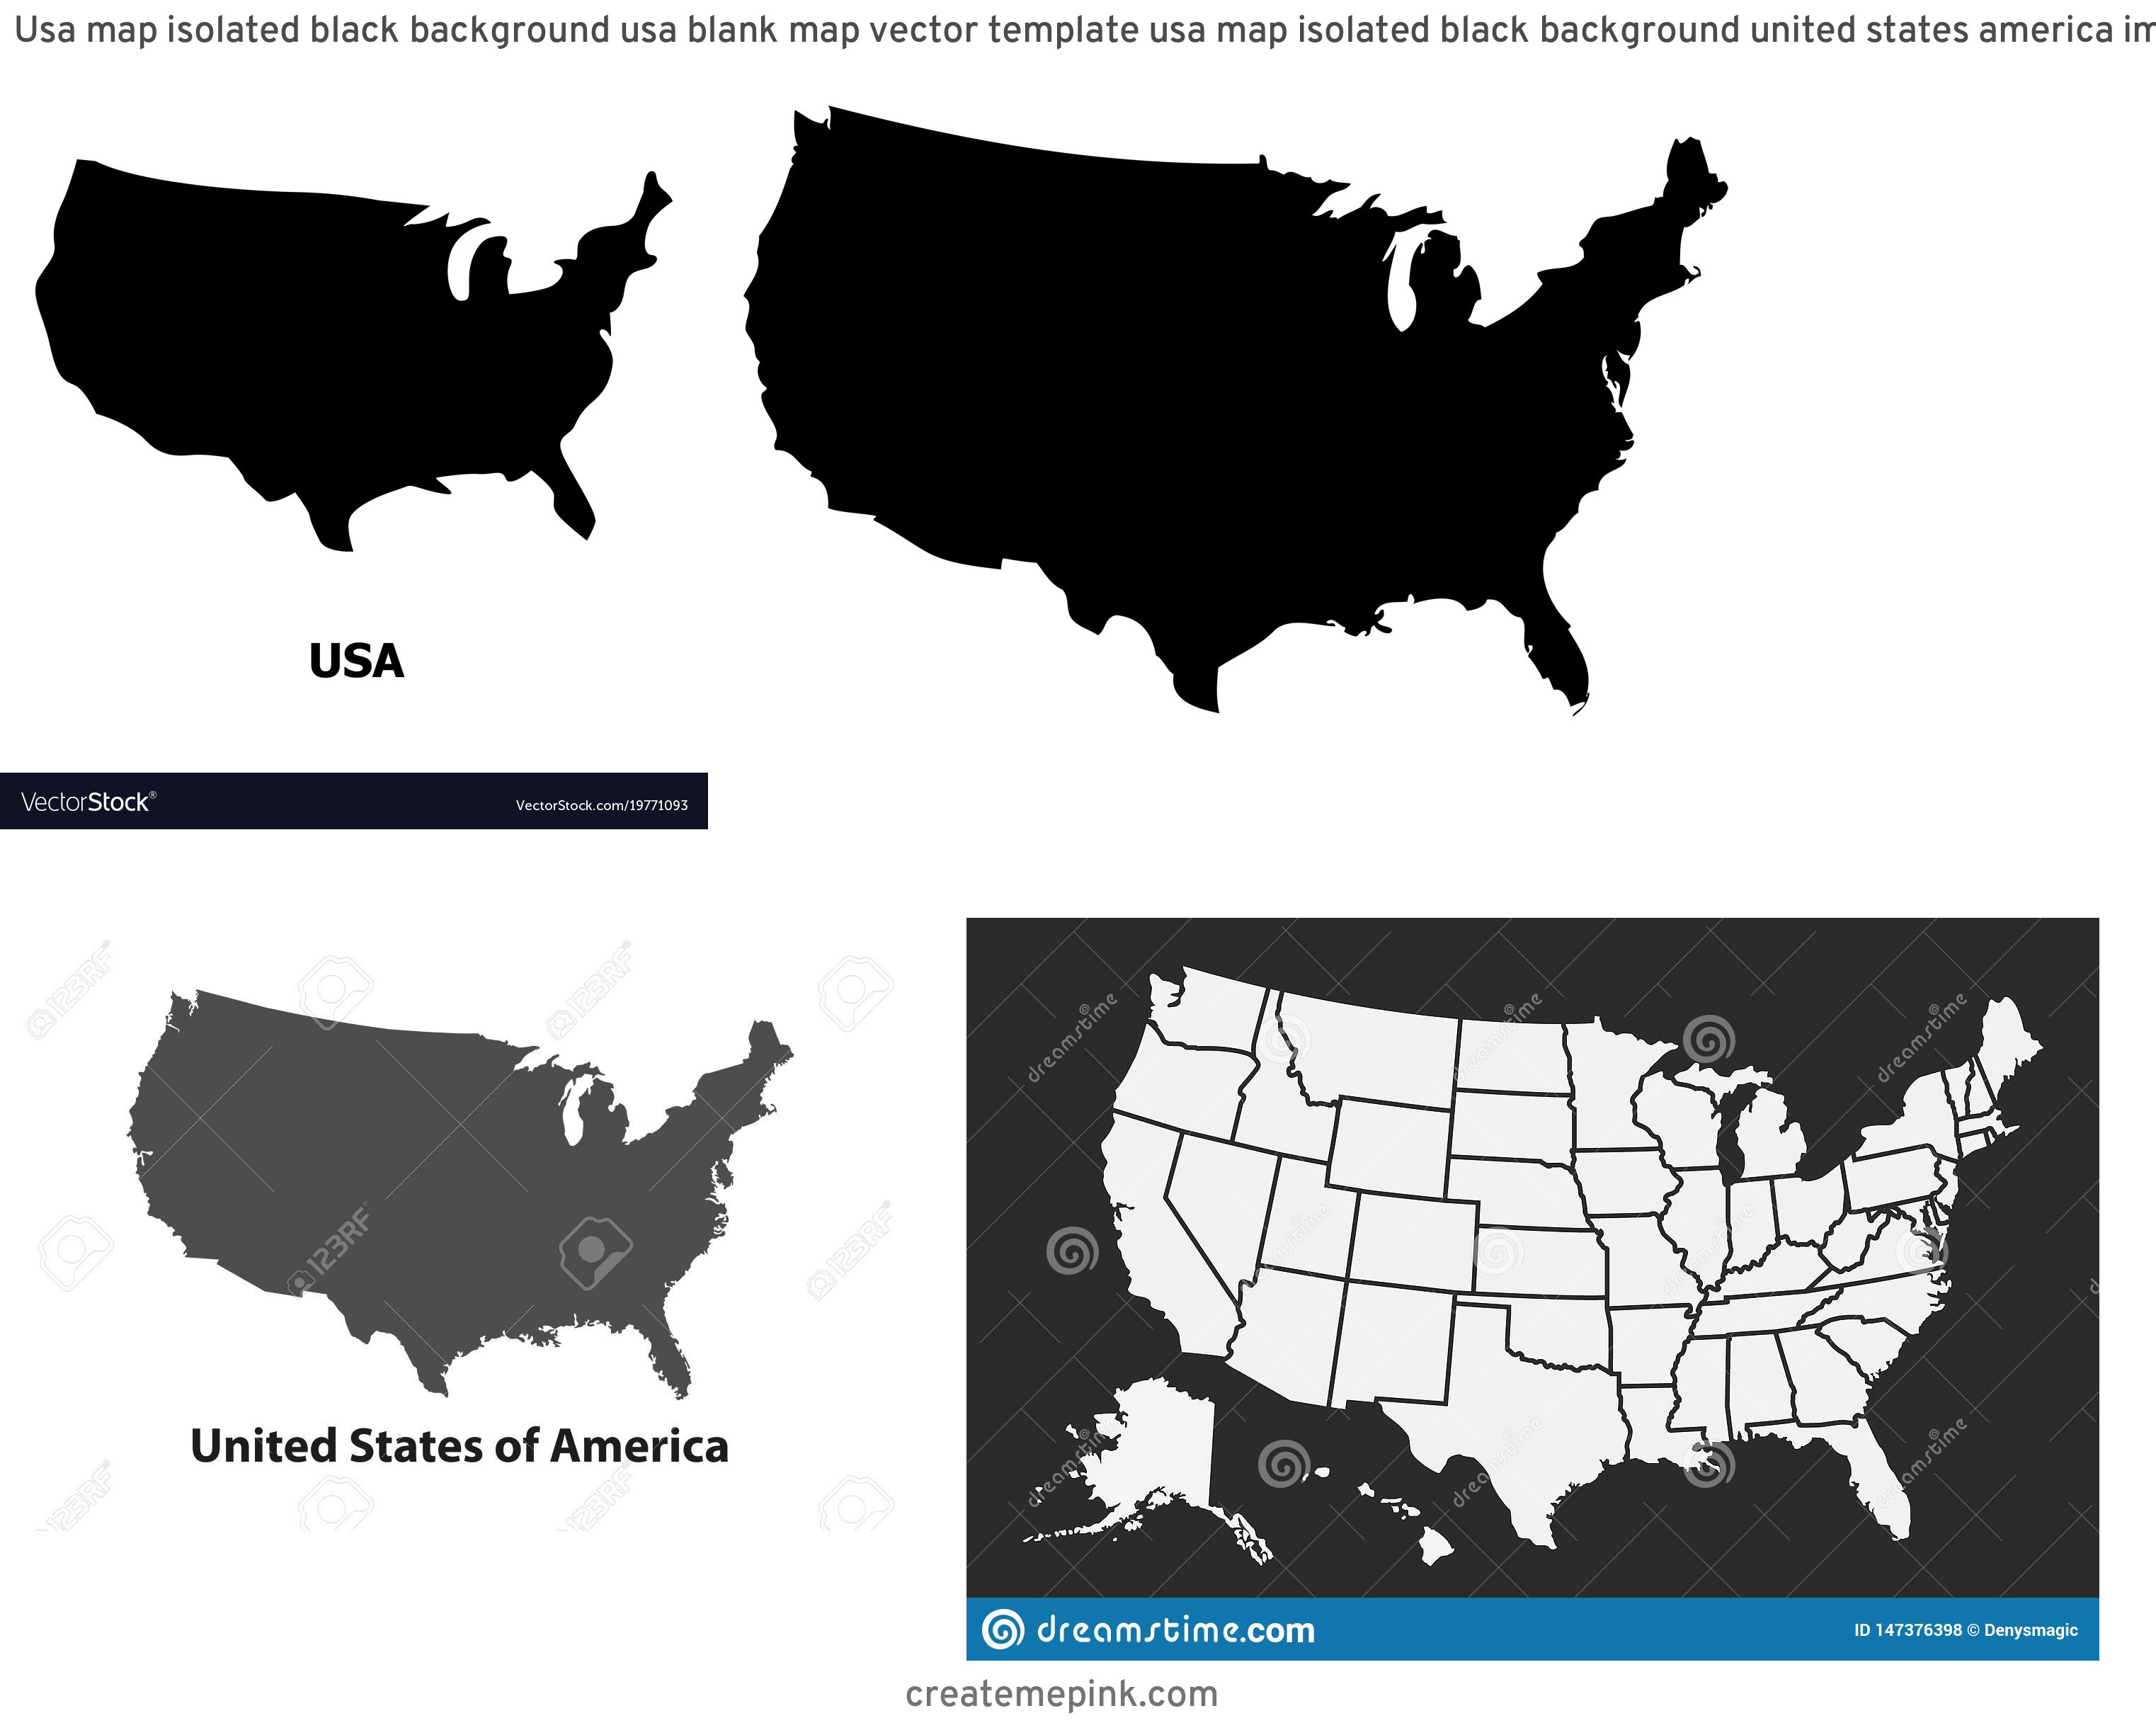 USA Map Vector Black: Usa Map Isolated Black Background Usa Blank Map Vector Template Usa Map Isolated Black Background United States America Image